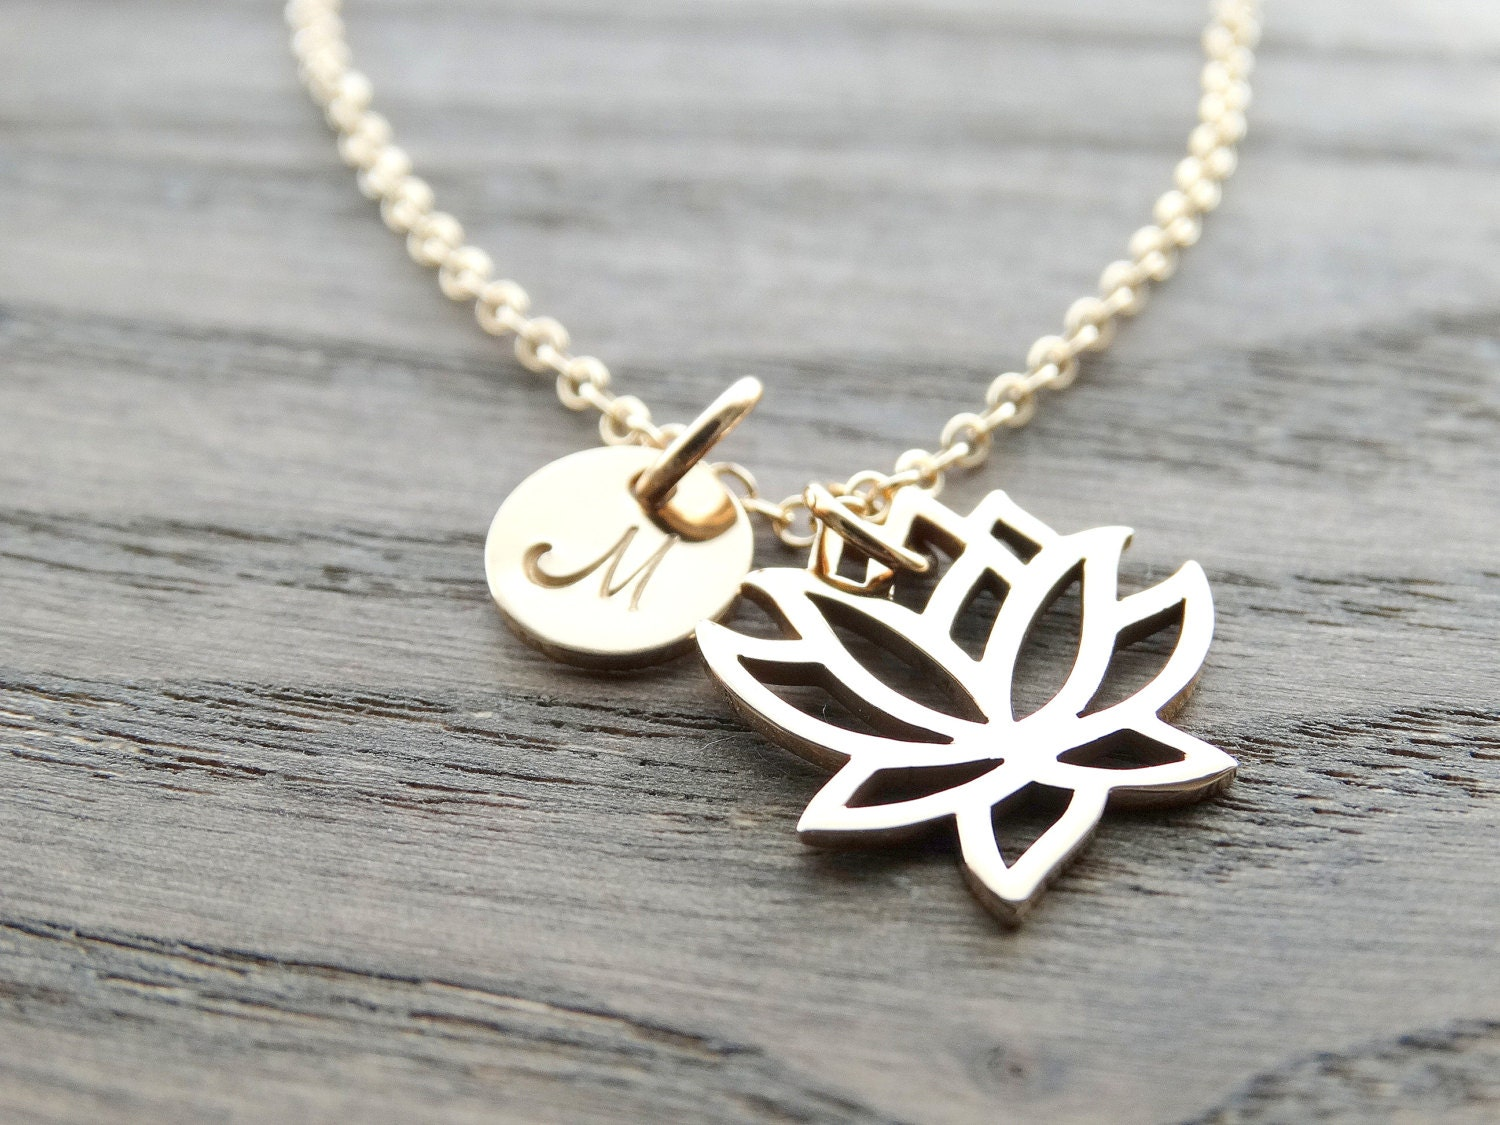 Lotus necklace gold lotus flower necklace lotus charm yoga jewelry lotus necklace gold lotus flower necklace lotus charm yoga jewelry gold filled necklace lotus jewelry initial necklace personalized jewelry izmirmasajfo Images